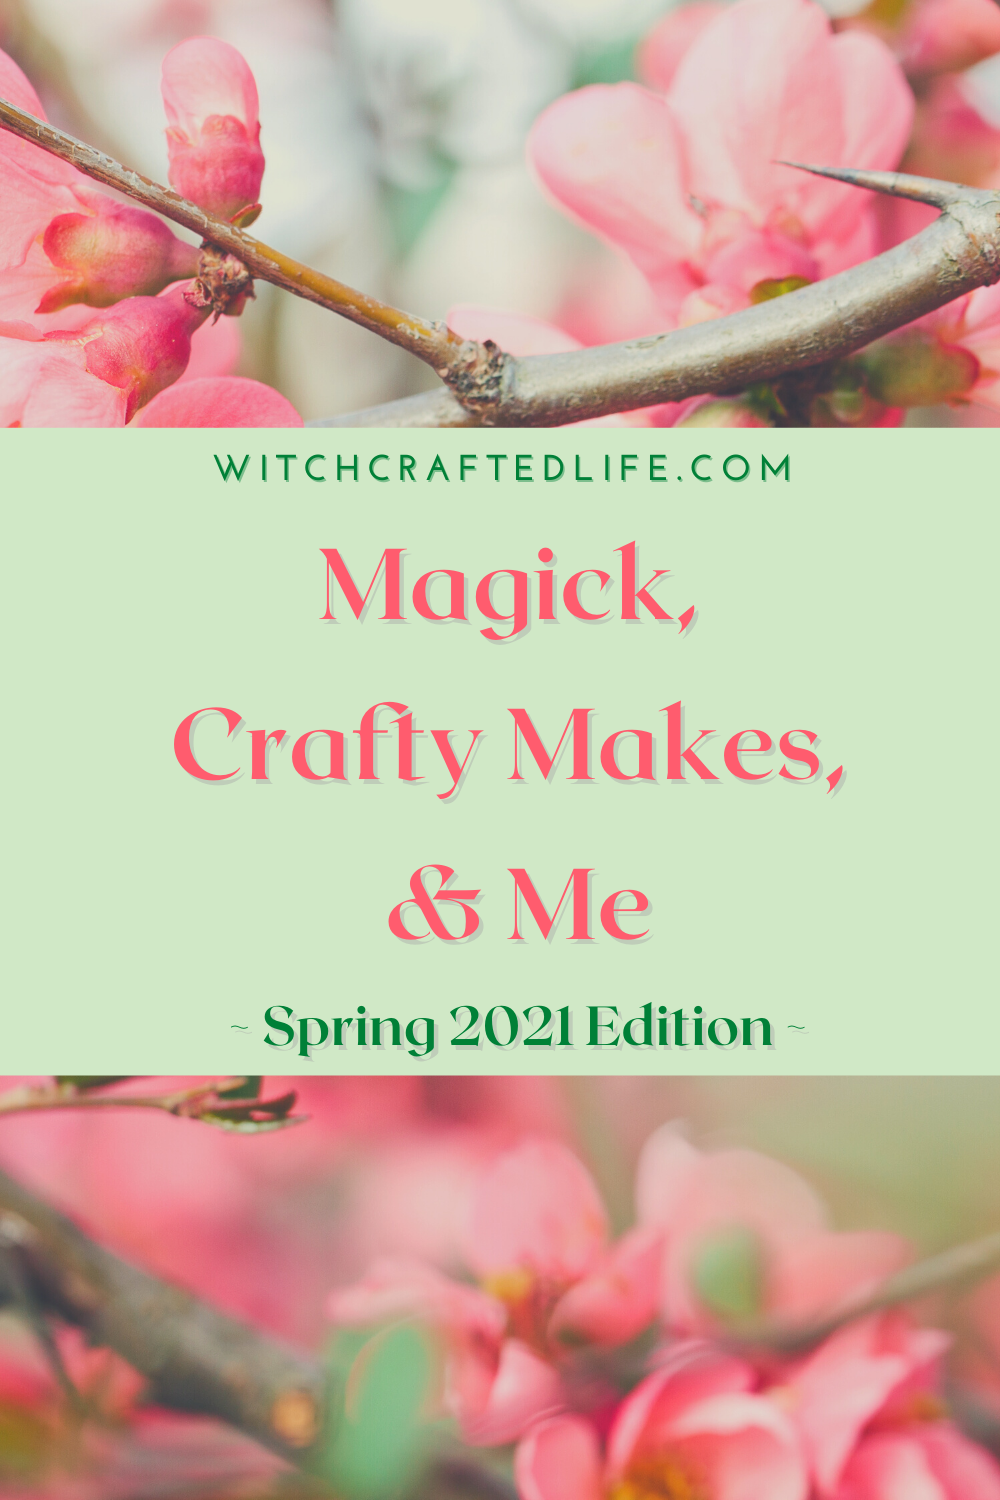 Spring 2021 Edition of Magick, Crafty Makes, and Me